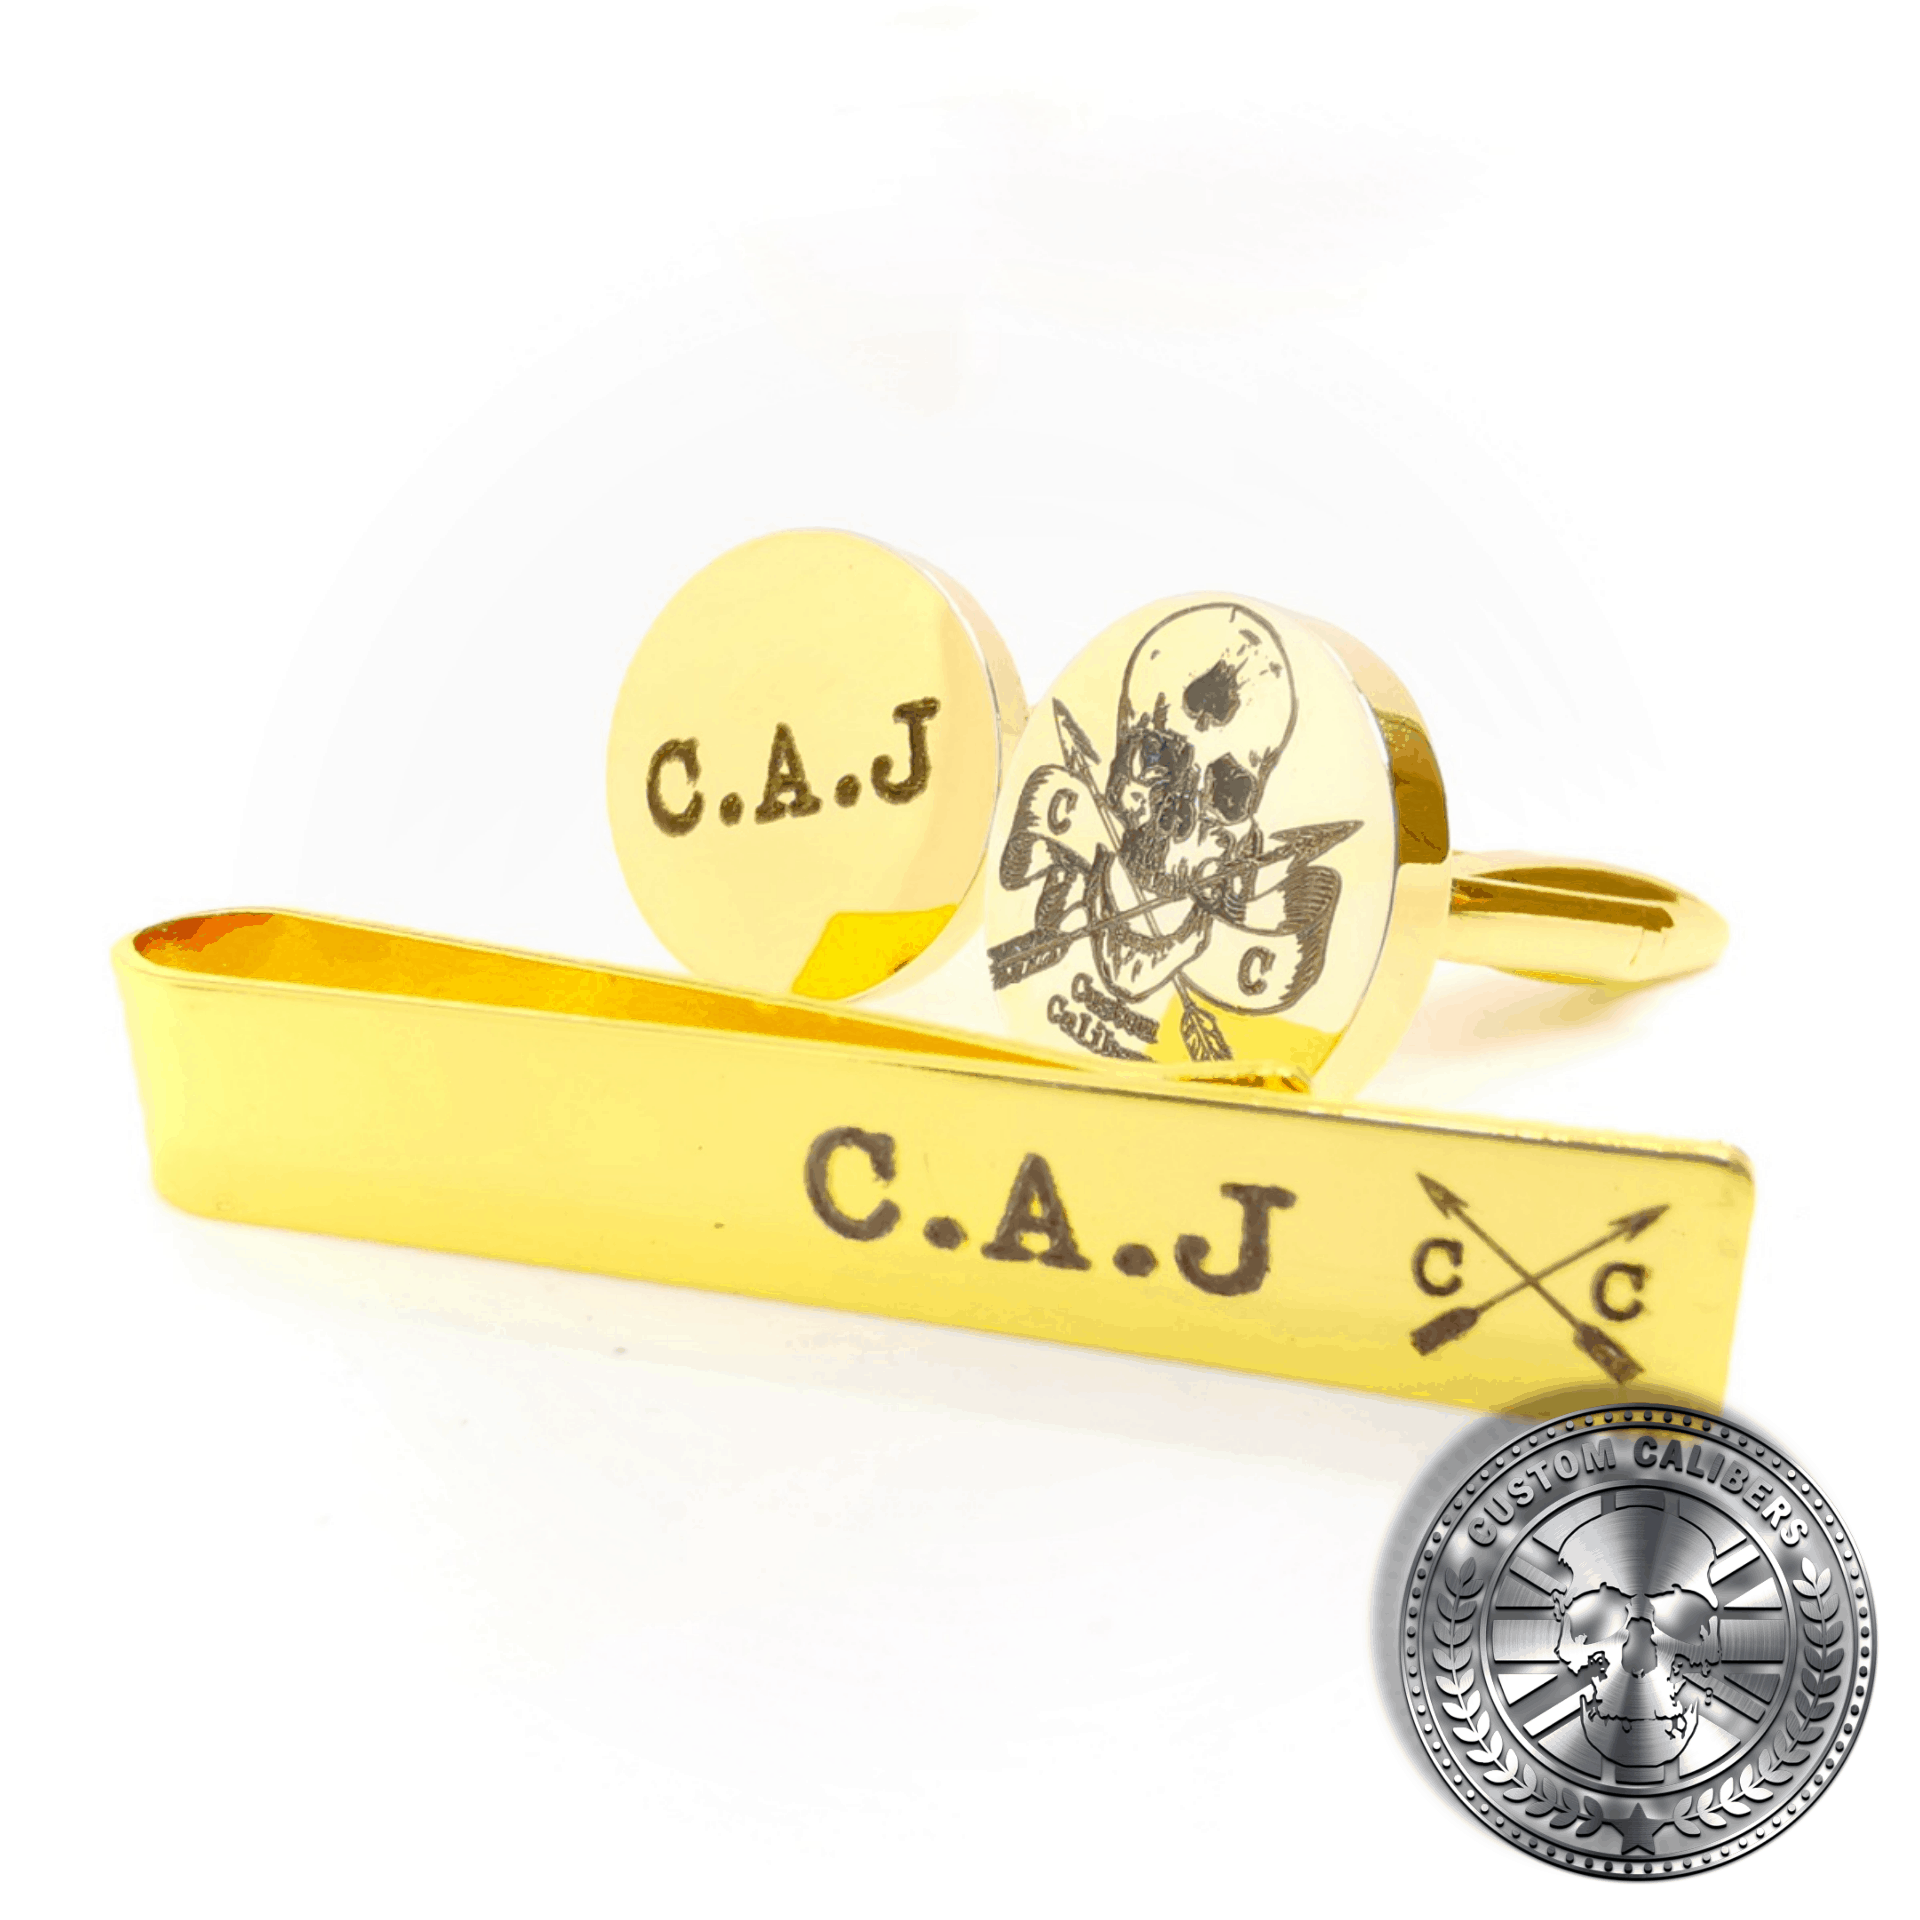 A close up shot of a solid brass Cuff link and tie clip set engraved with some initials and the custom calibers logo on the front